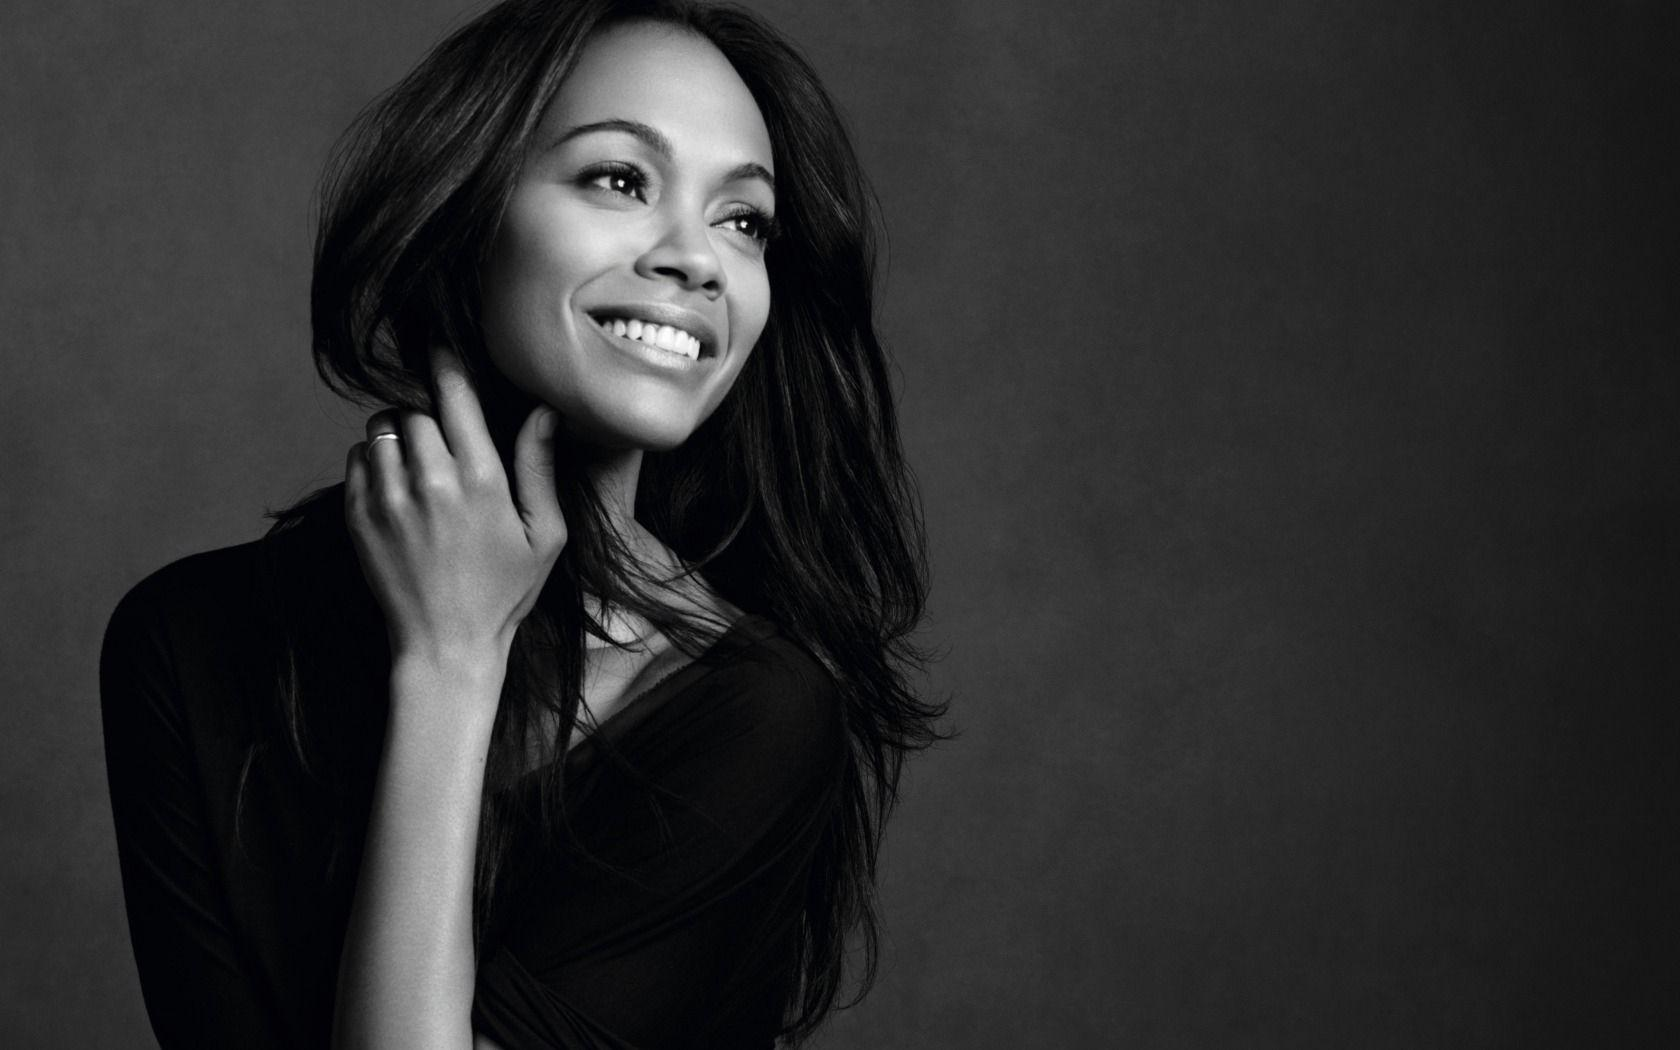 Zoe saldana wallpapers wallpaper cave - Zoe wallpaper ...